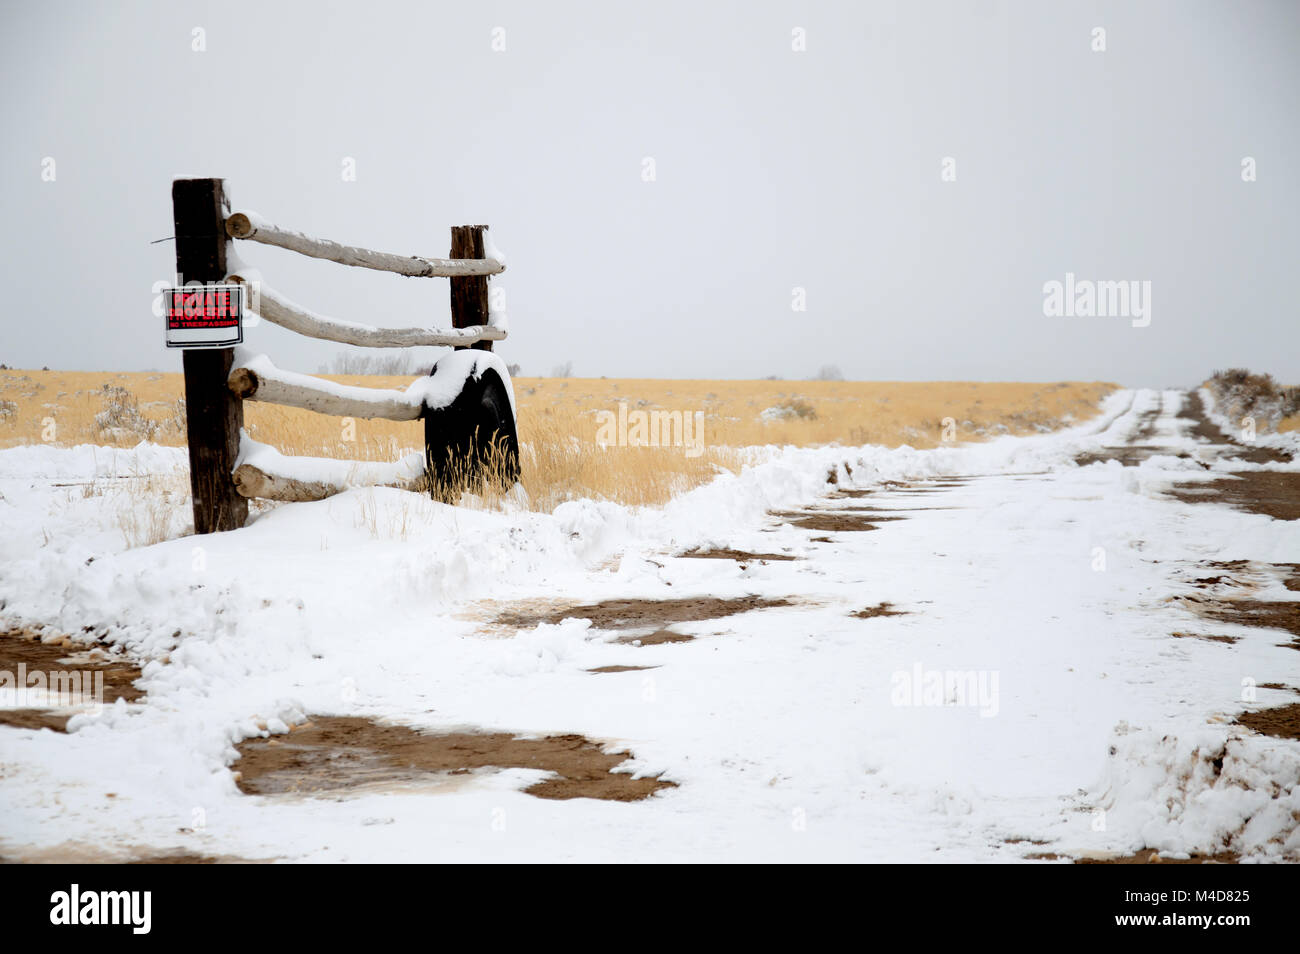 An old tire leaning up against a fence post in the Utah desert patched with snow. - Stock Image